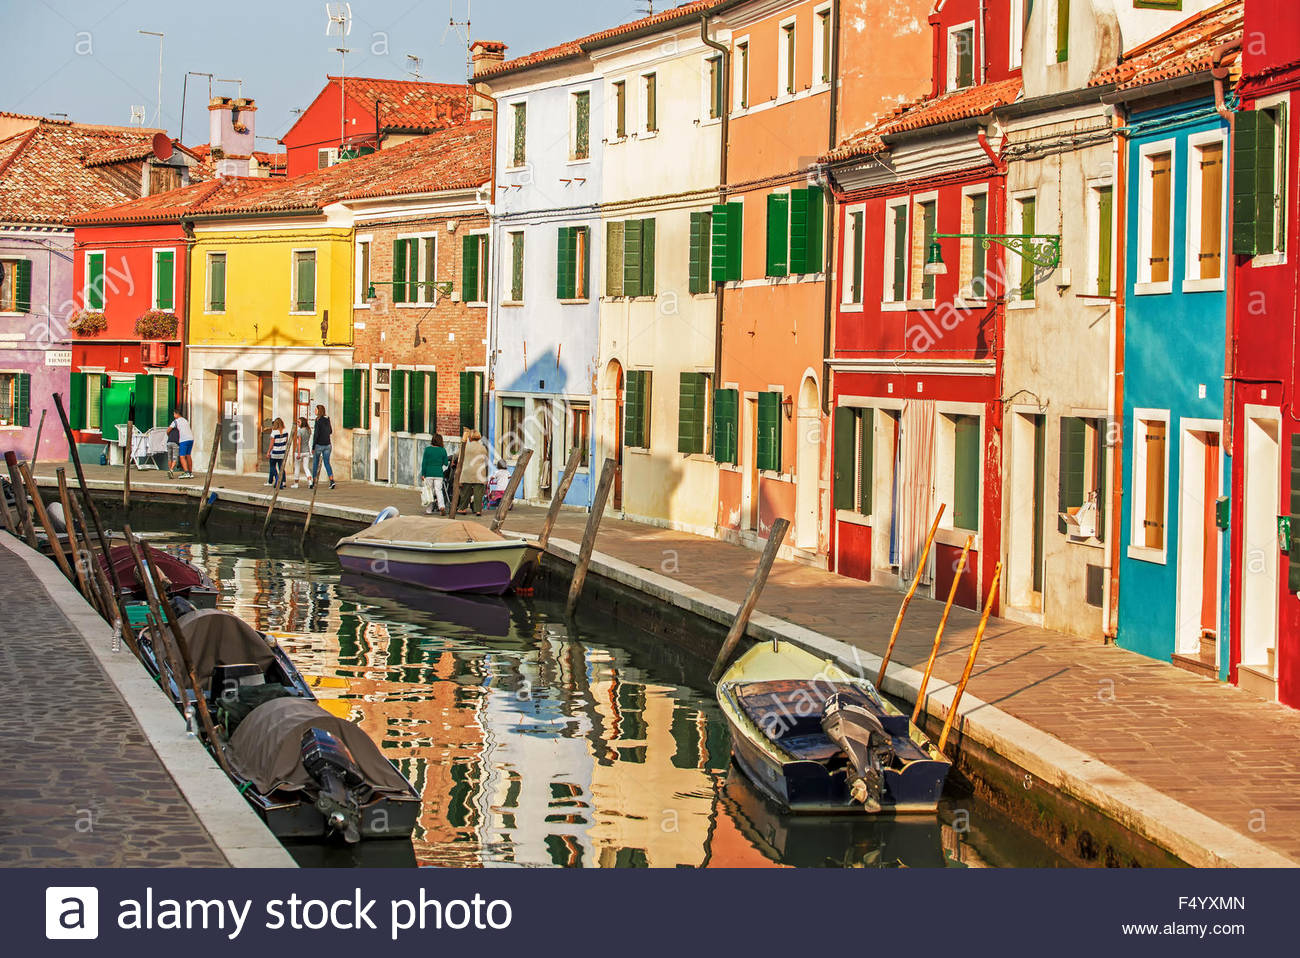 Colorful burano italy burano tourism - Stock Photo The Colorful Houses Of Burano A Small Island In The Lagoon Of Venice Much Visited By Tourists From Around The World